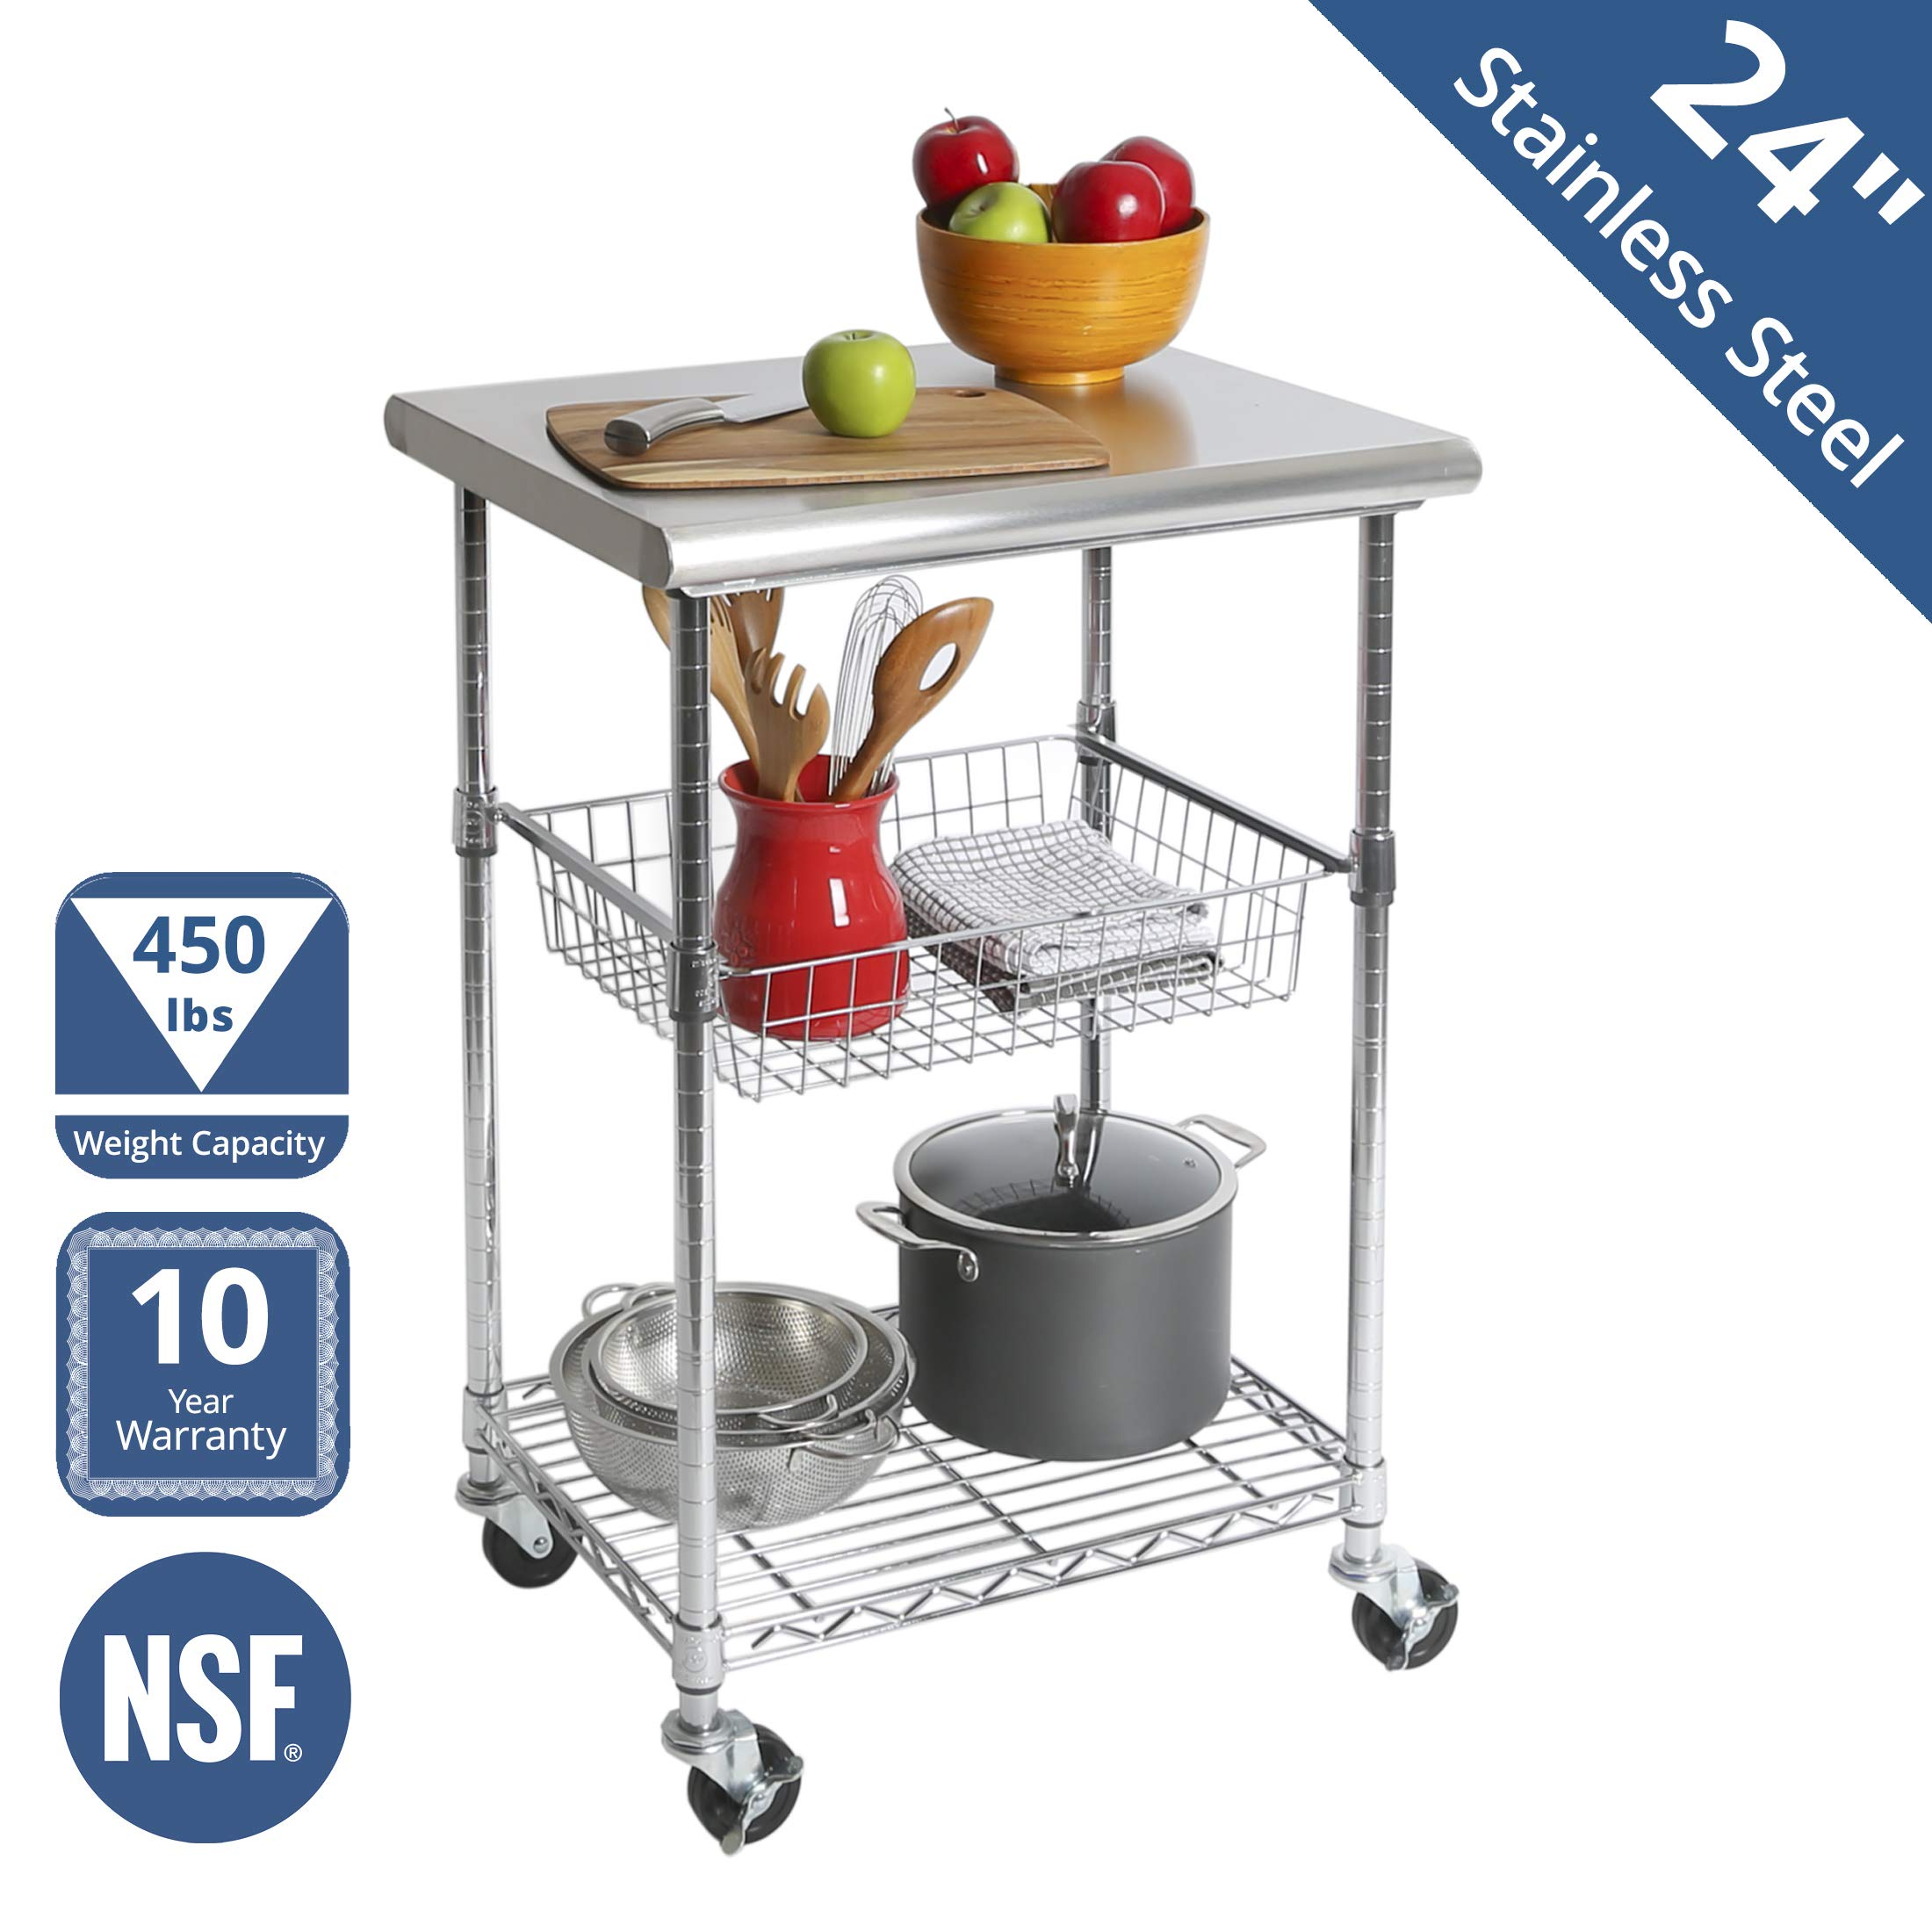 Seville Classics Stainless Steel Nsf Certified Professional Kitchen Work Table Cart 24 W X 20 D